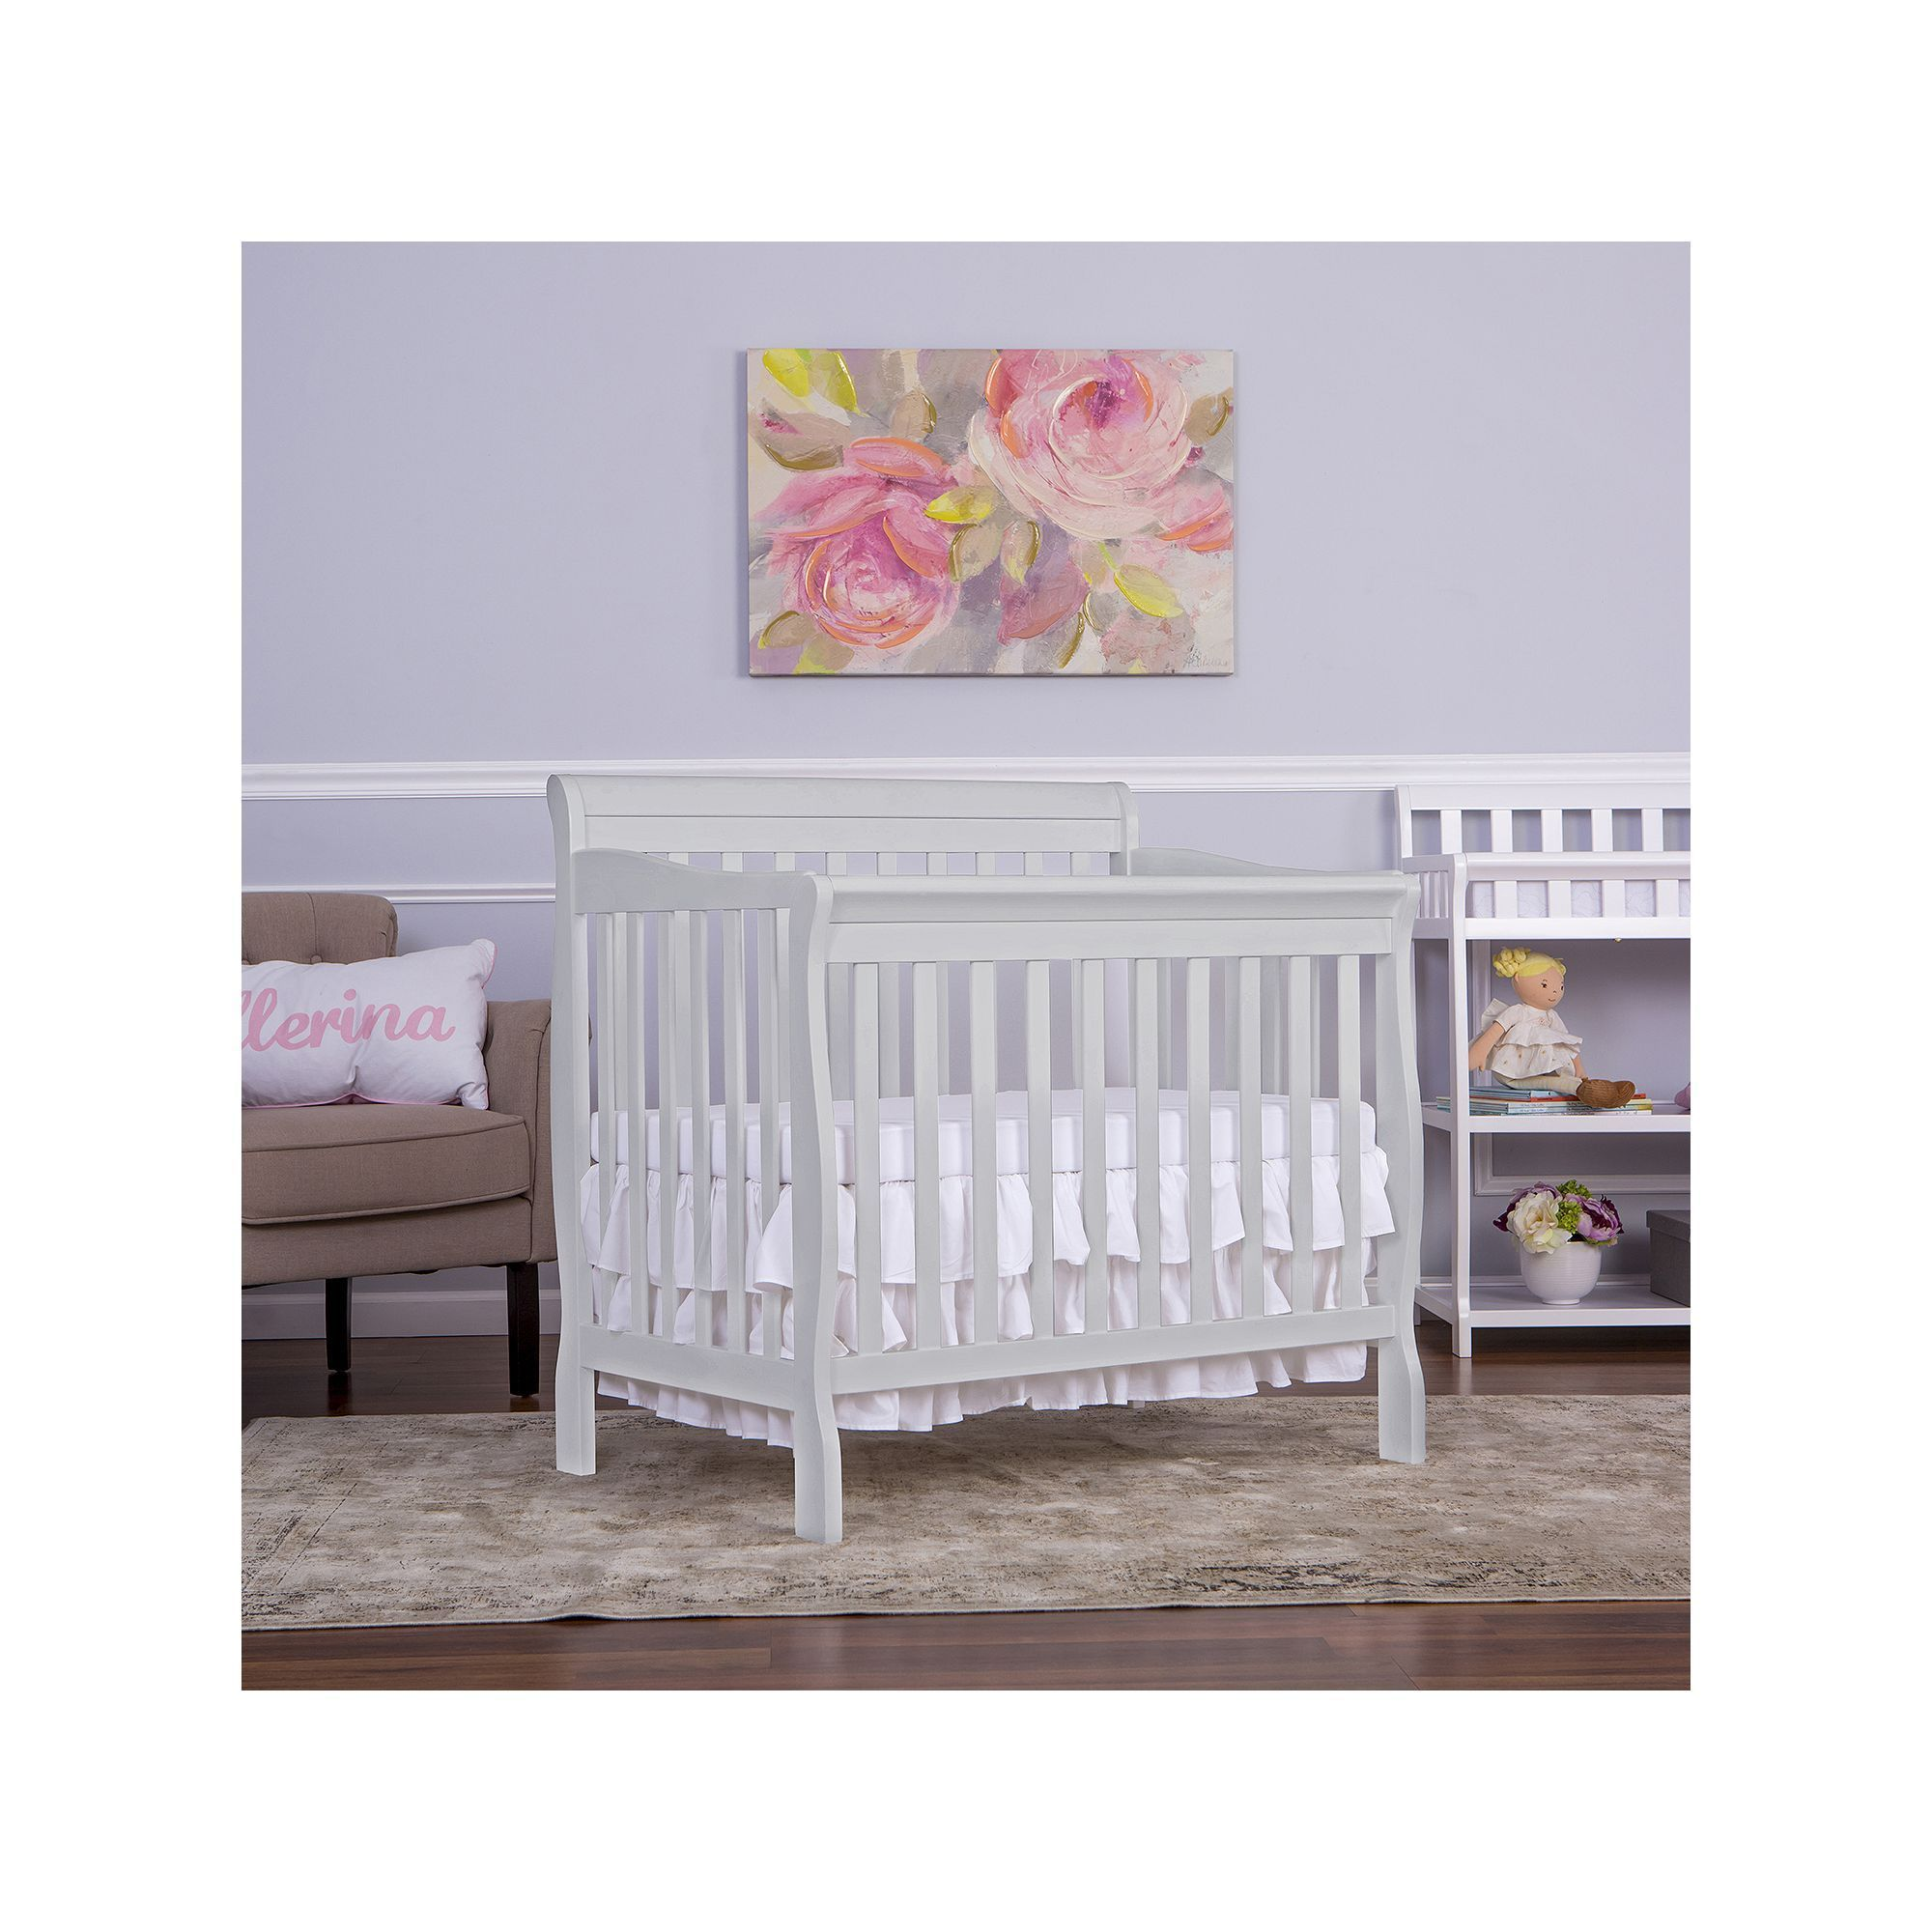 mini pioneering reviews beautiful well with antique as babyletto crib wayfair origami portable blankets baby wheels swaddlings cribs